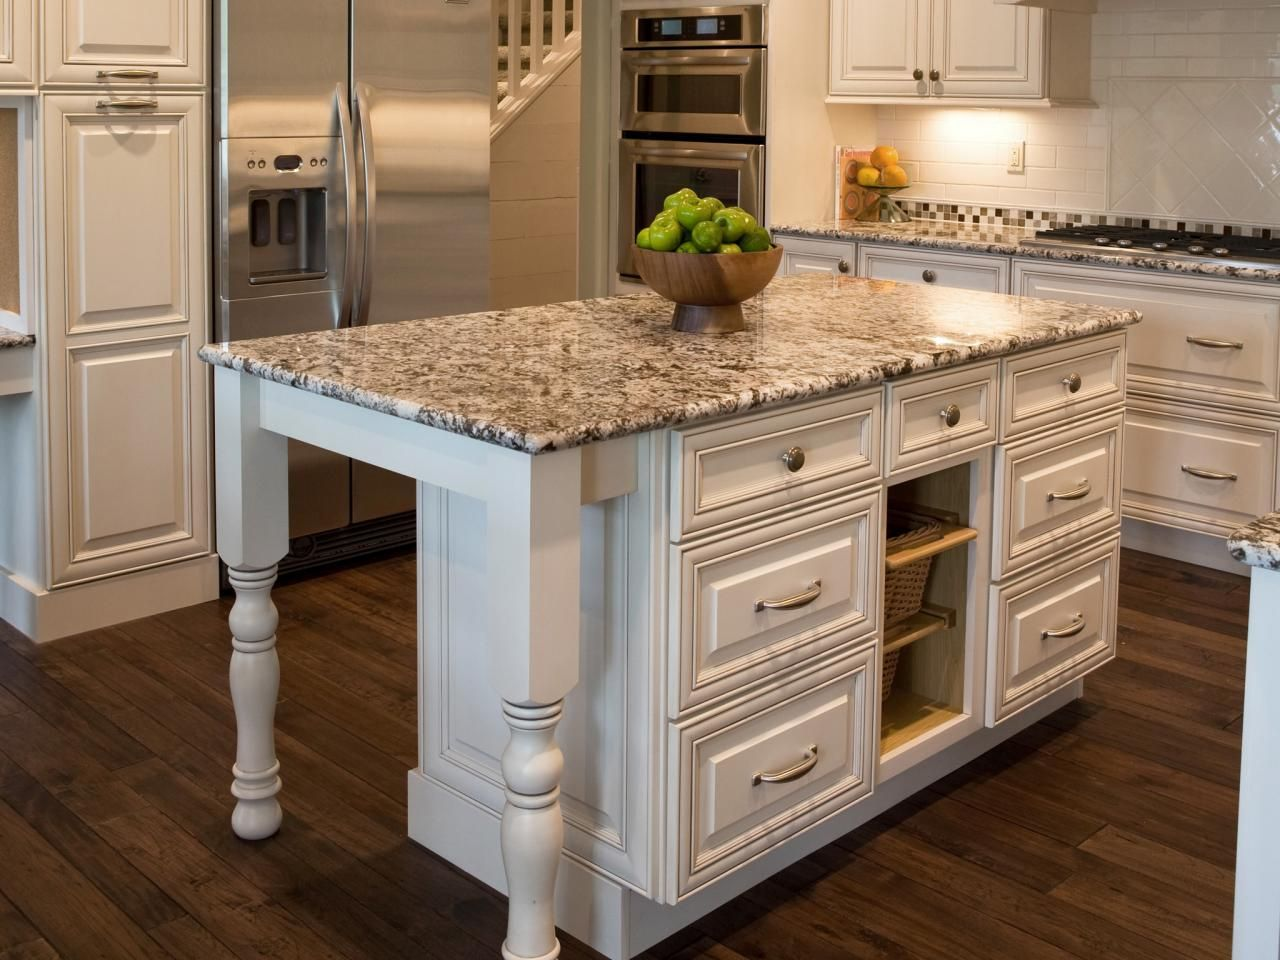 70 Support Leg For Granite Countertop Kitchen Cabinets Update